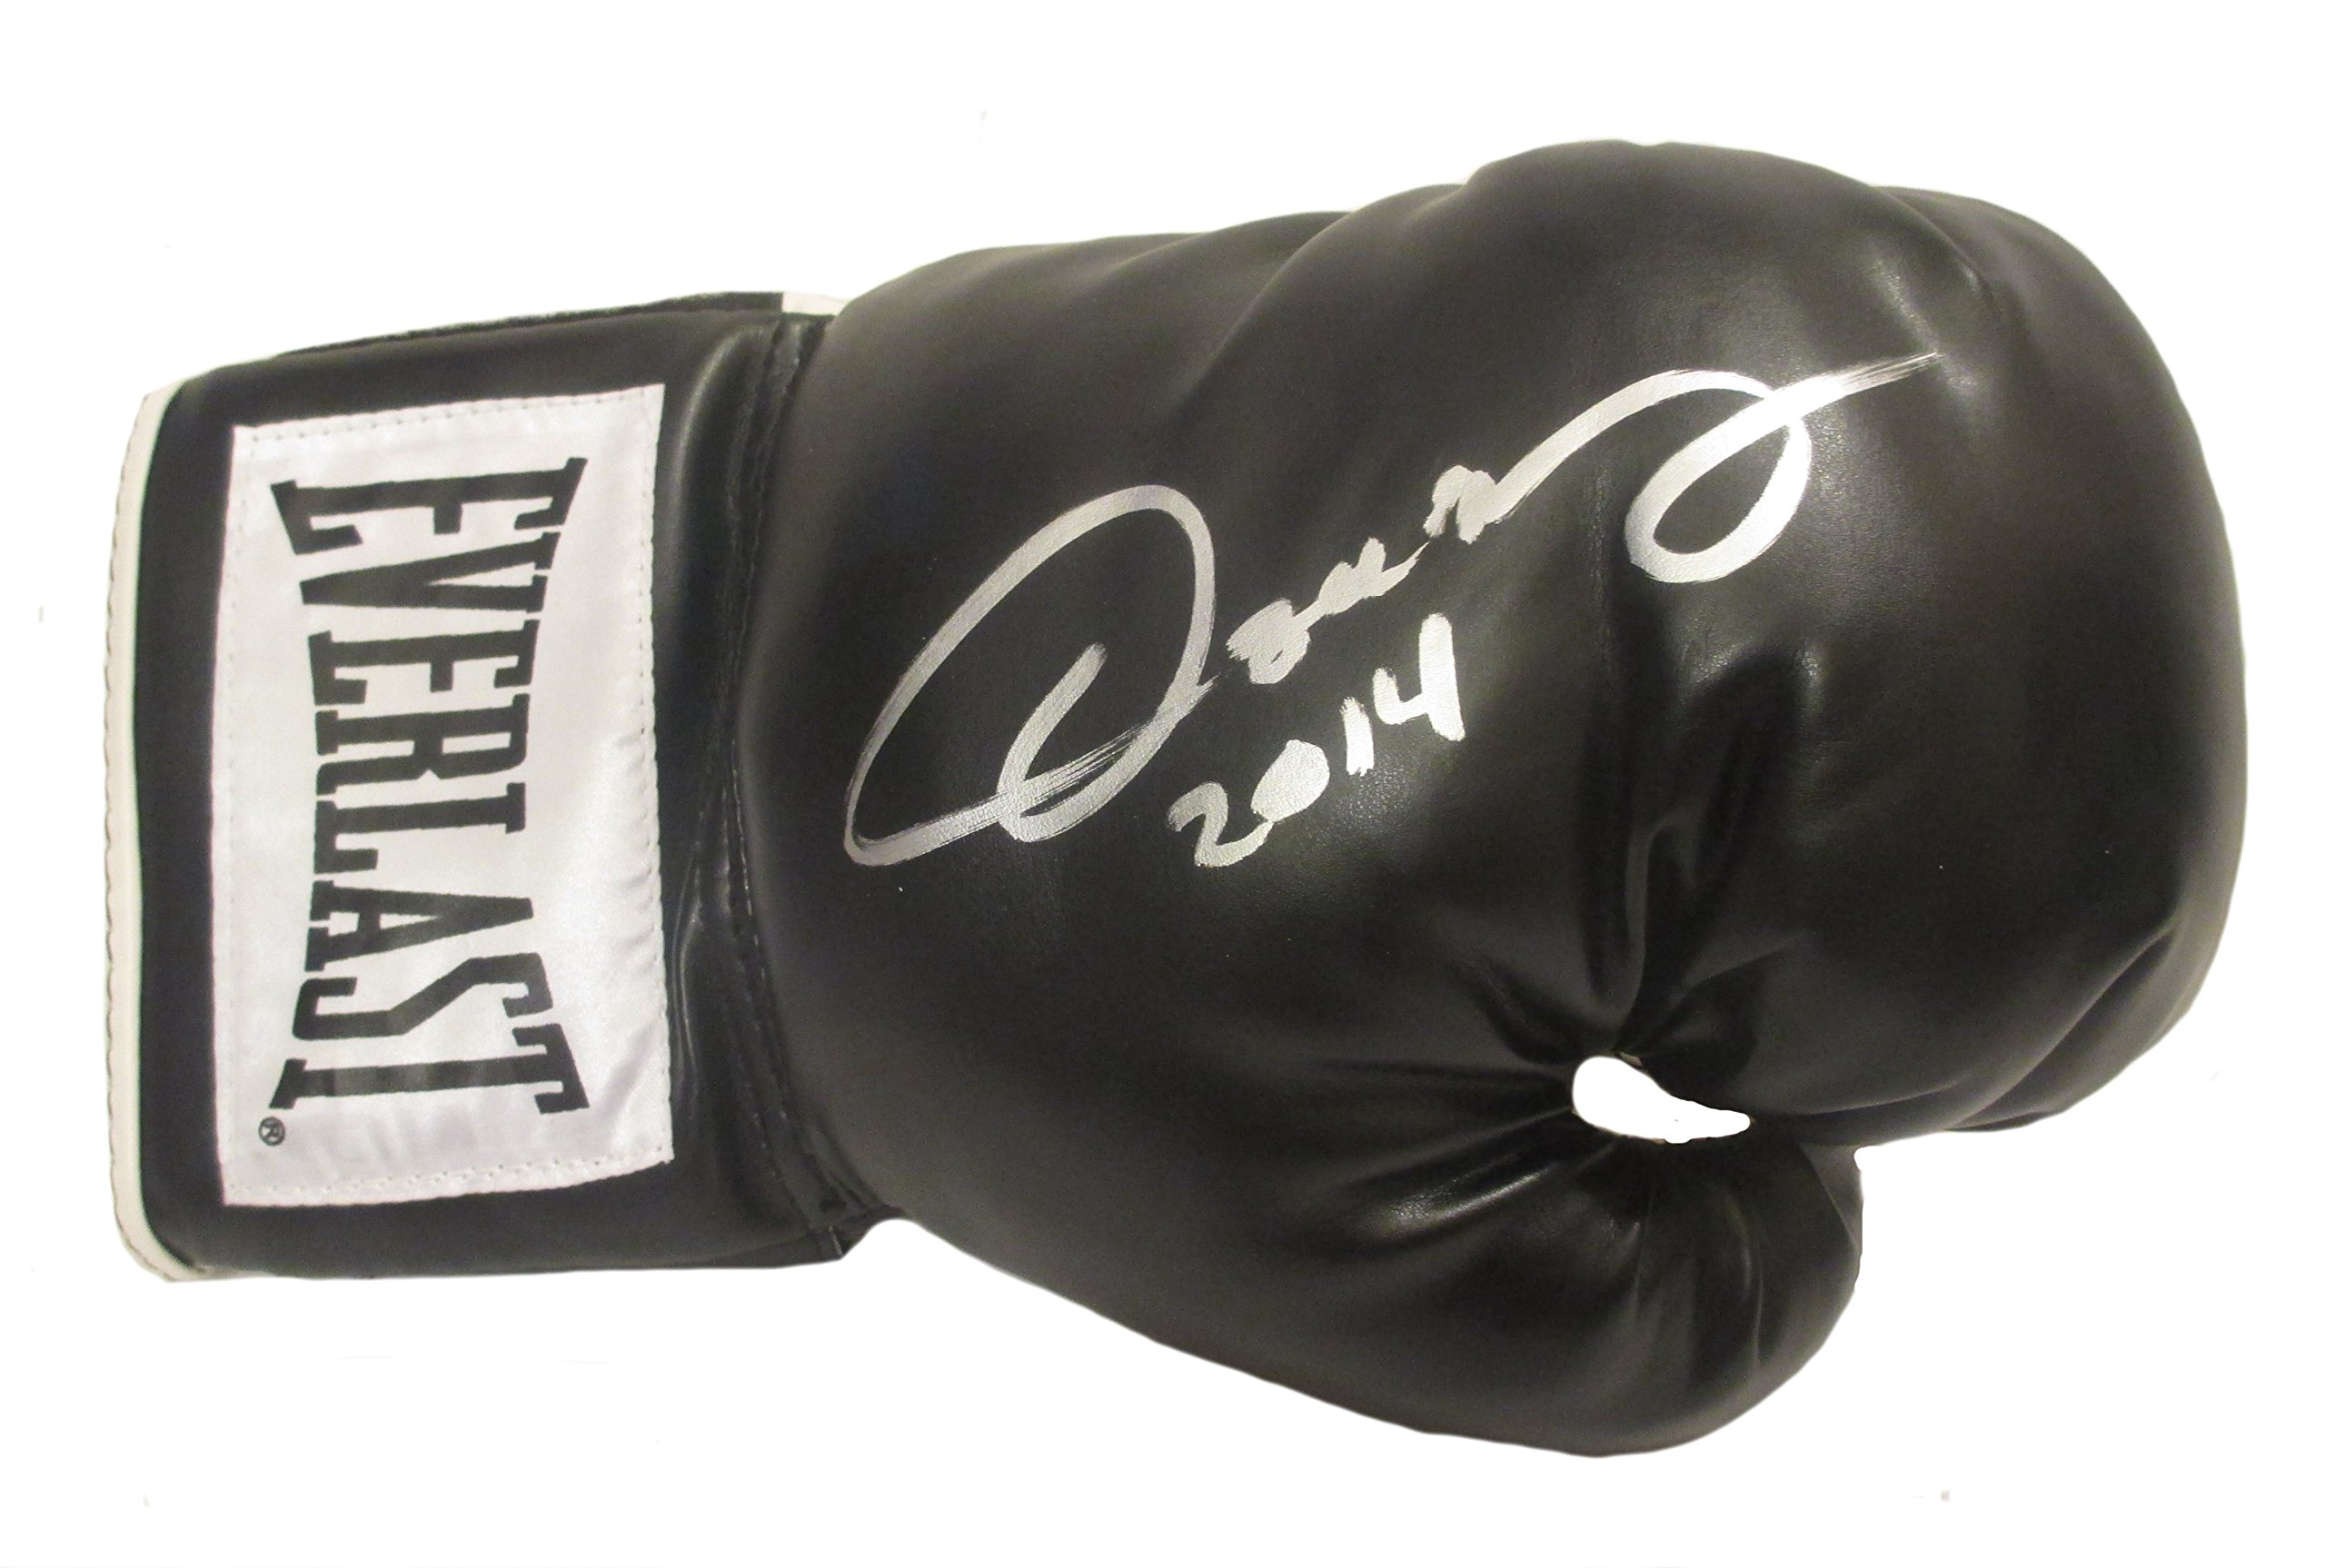 Oscar De La Hoya Autographed Hand Signed Black Everlast Boxing Glove with 2014 Inscription and Proof Photo of Signing, COA